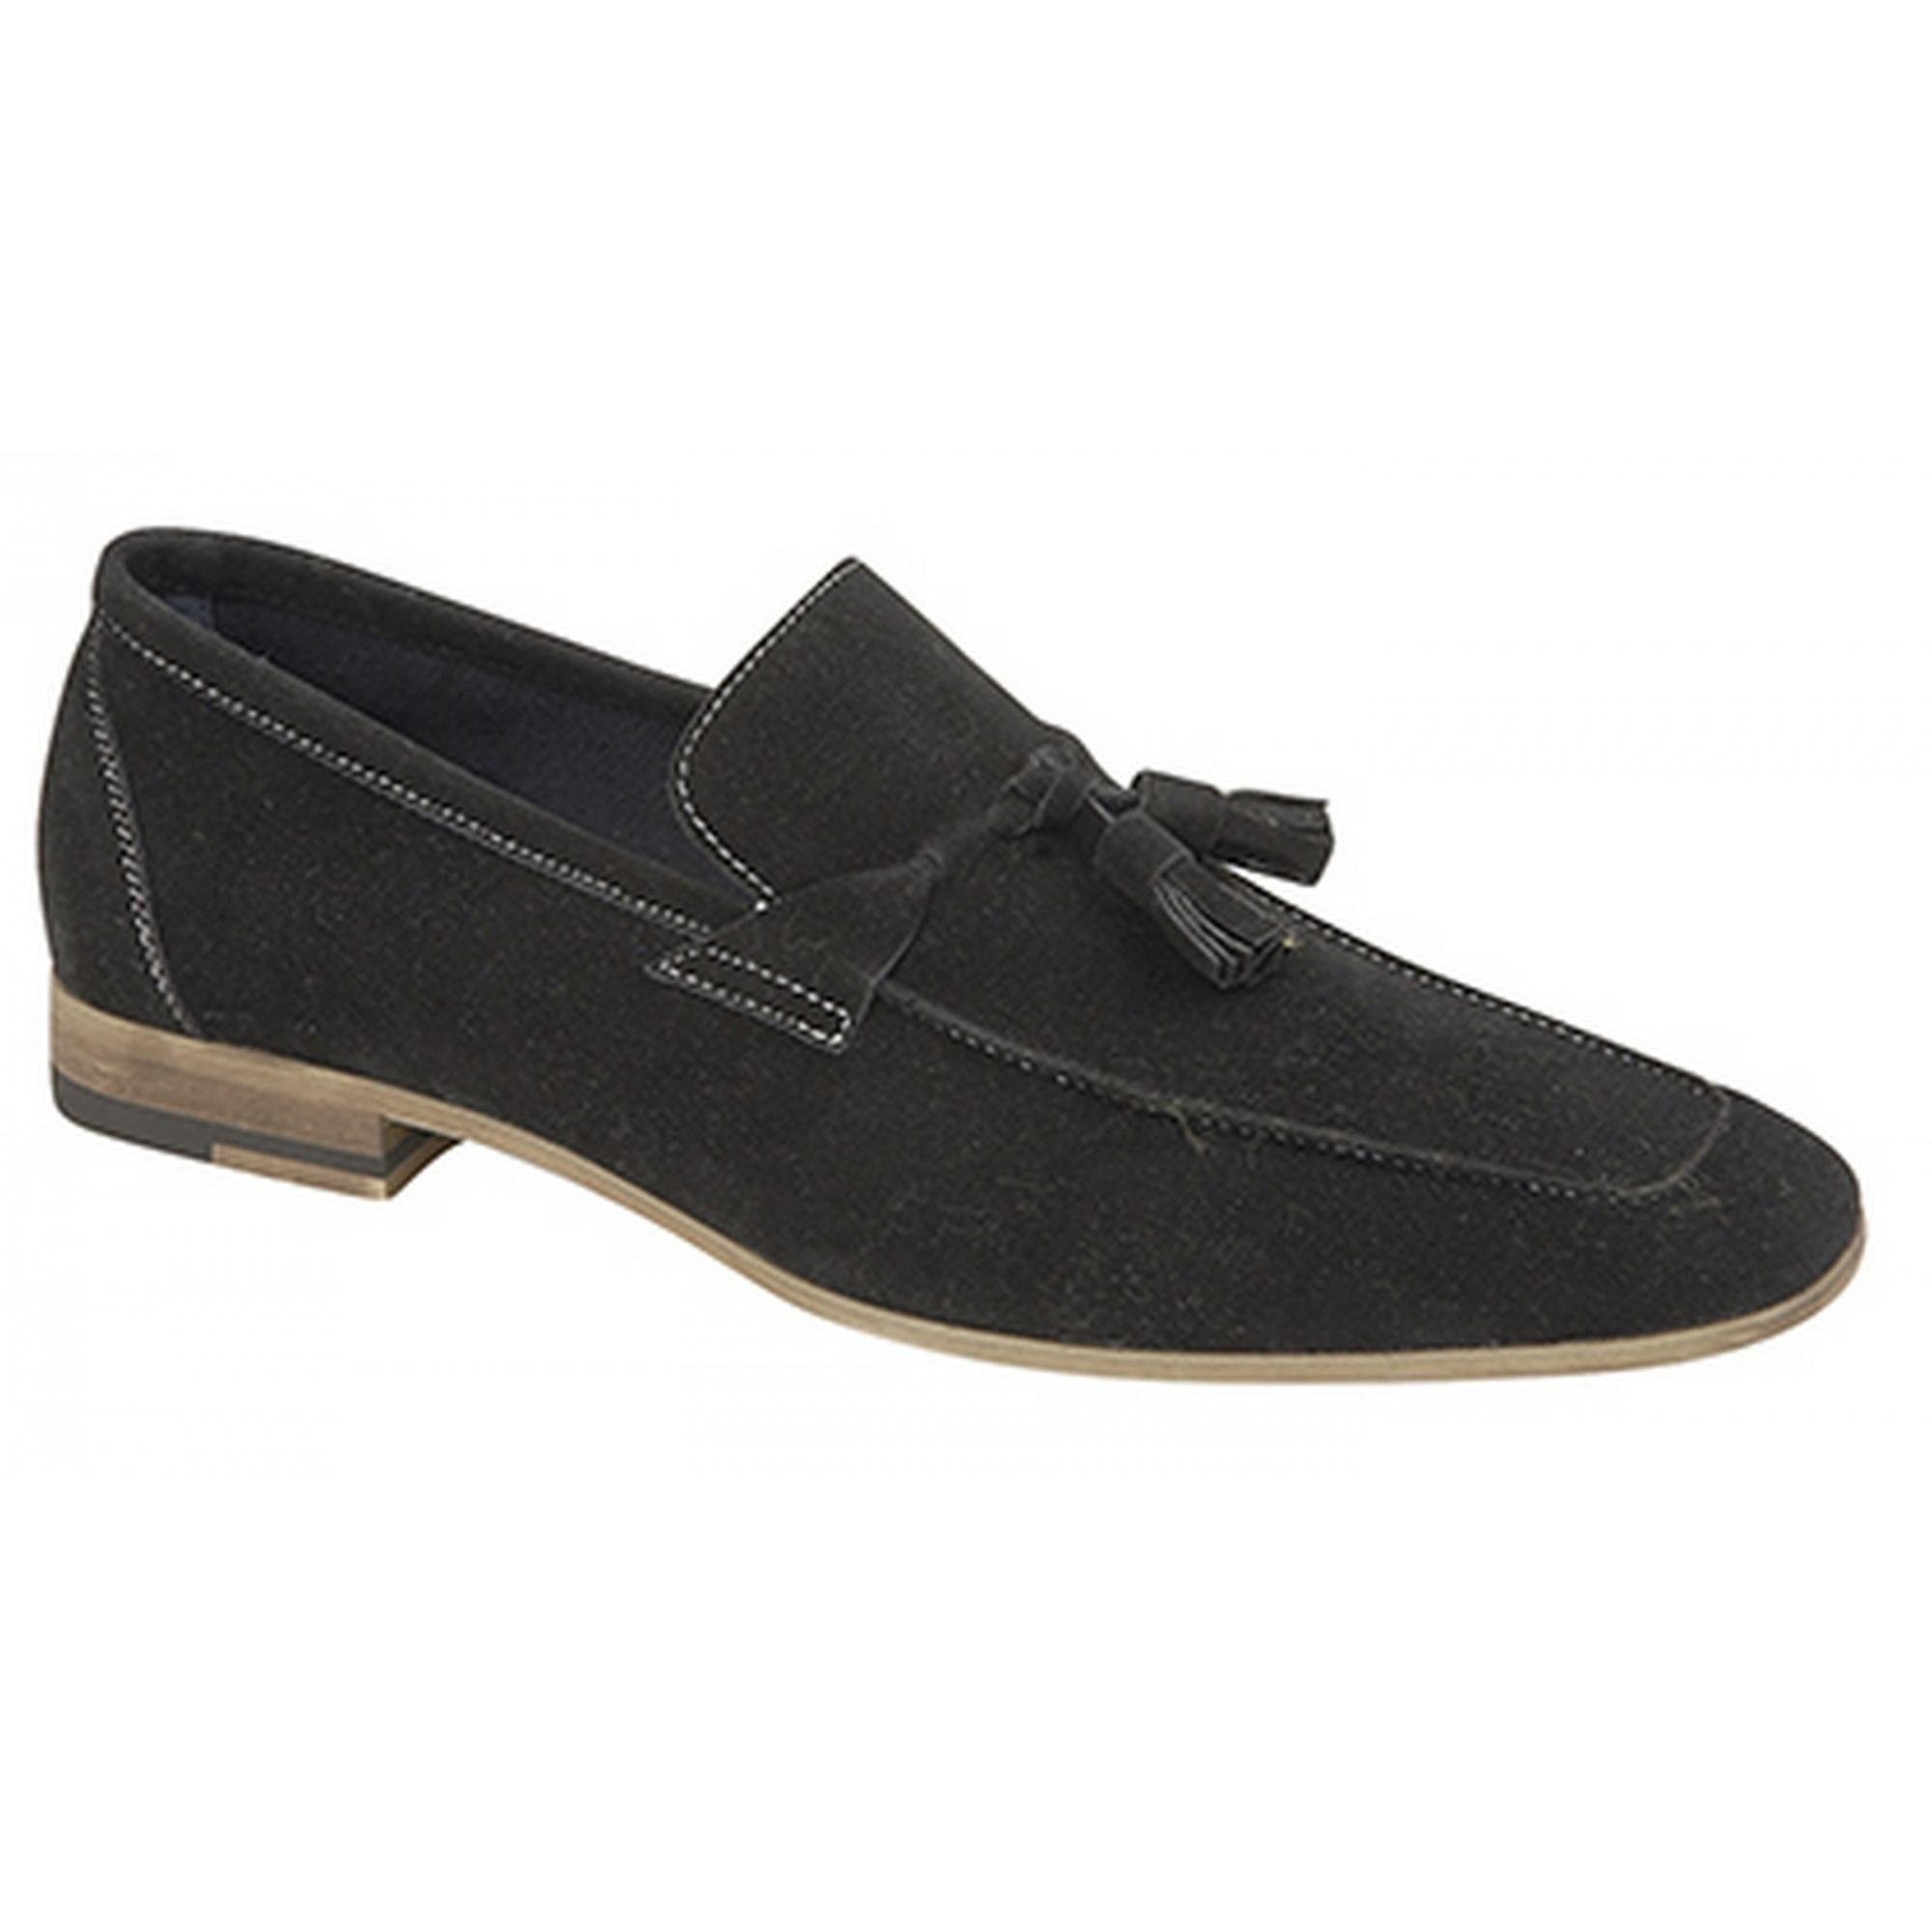 Route 21 Mens Tassle Trimmed Apron Casual Shoes